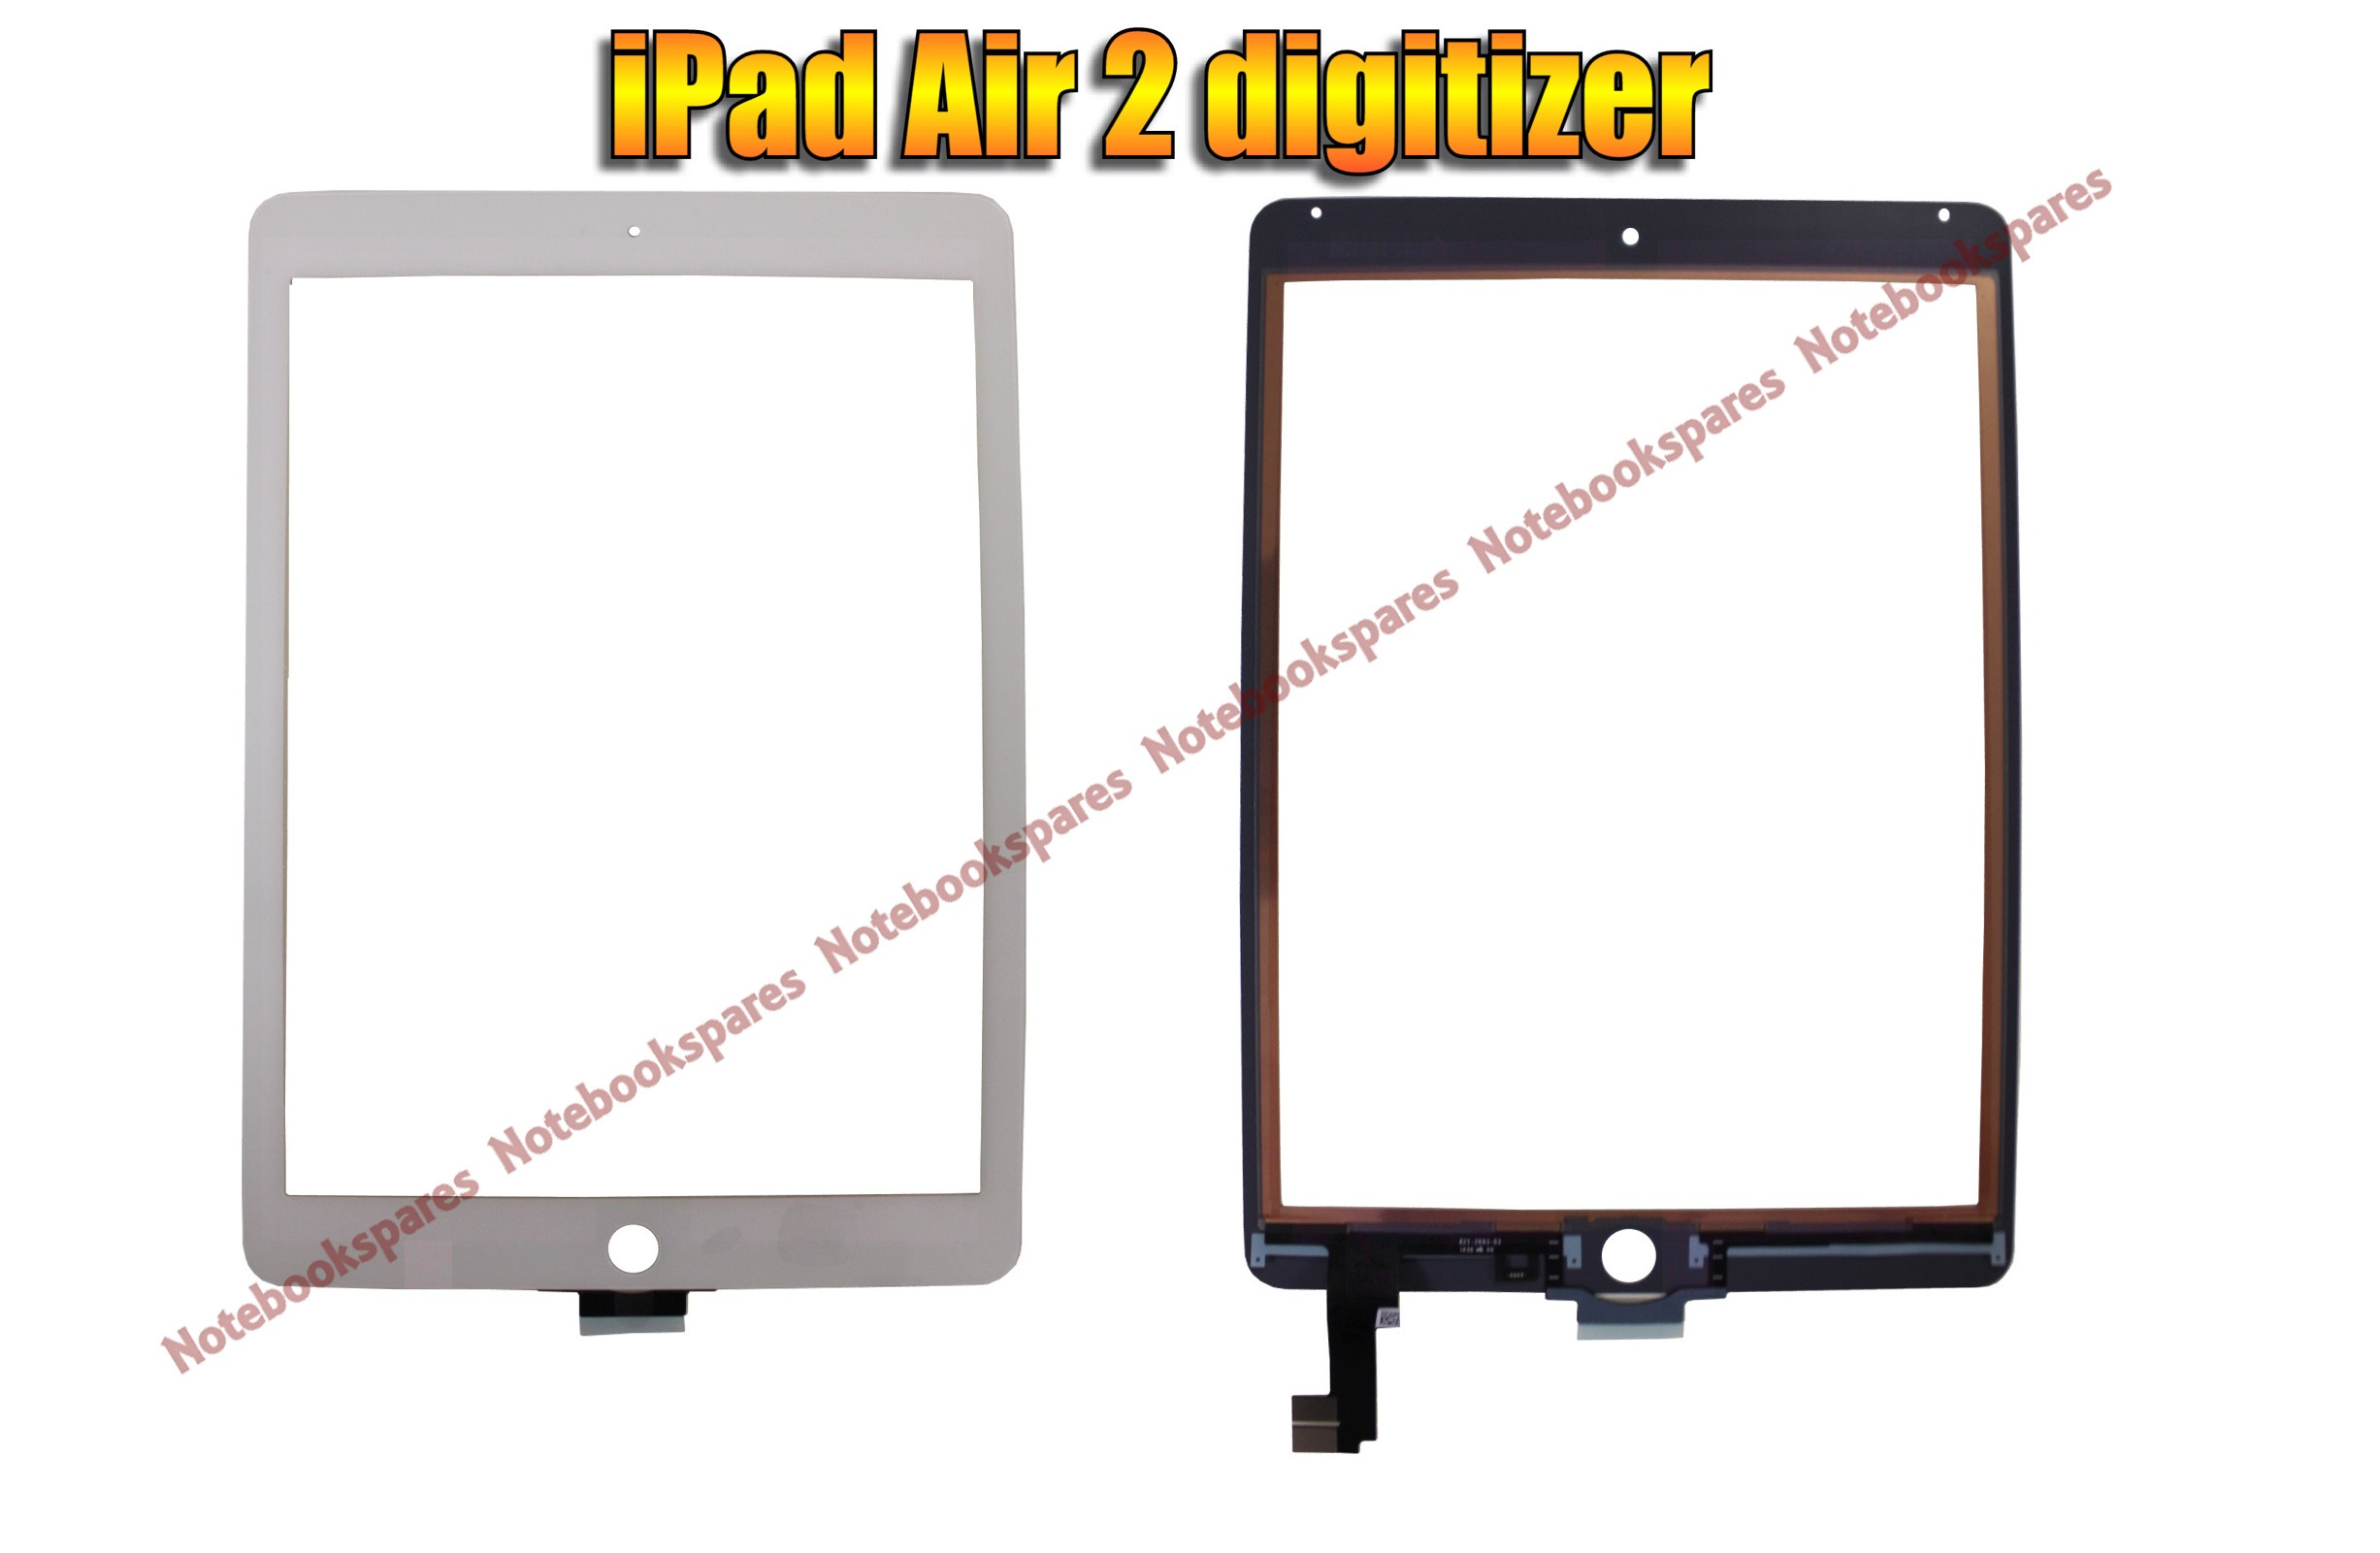 ipad digitizer replacement instructions